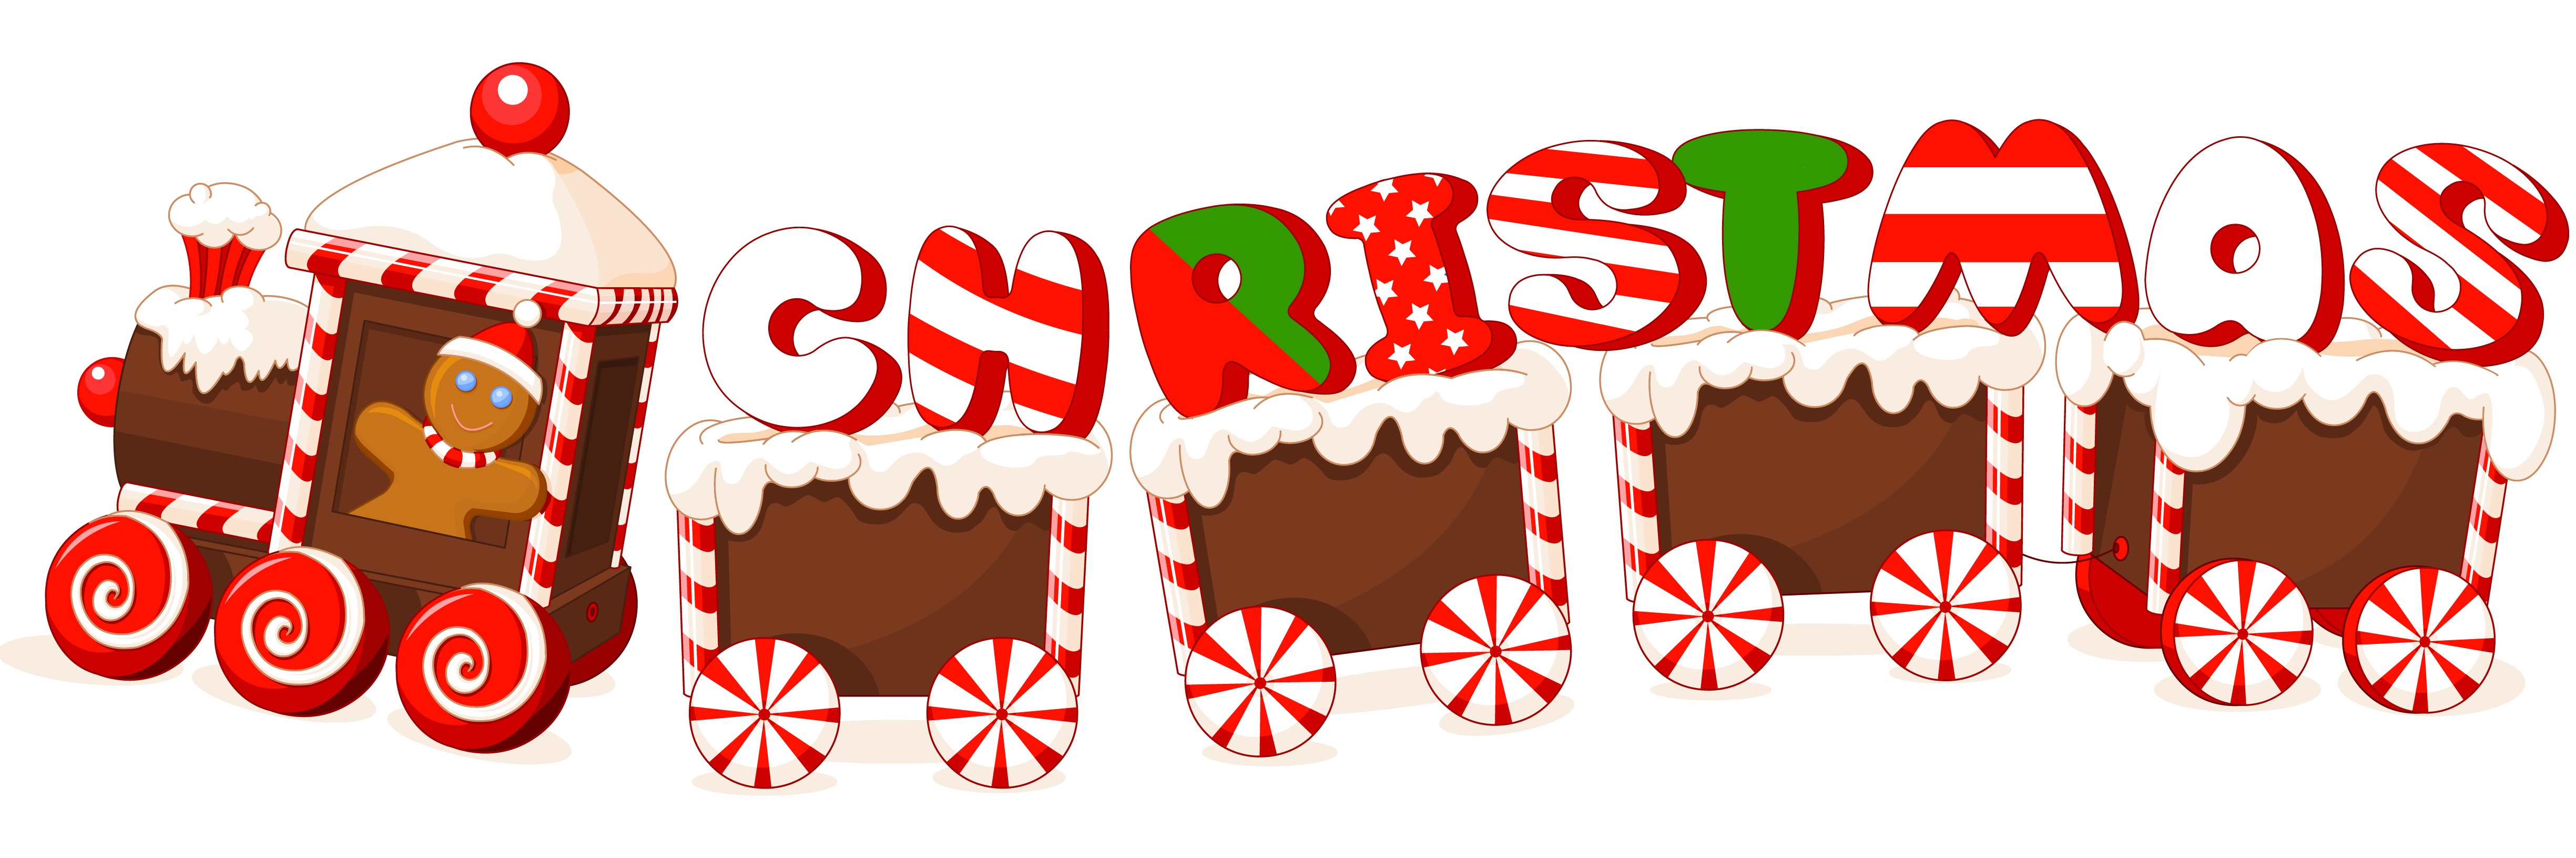 Christmas Candy Clip Art.